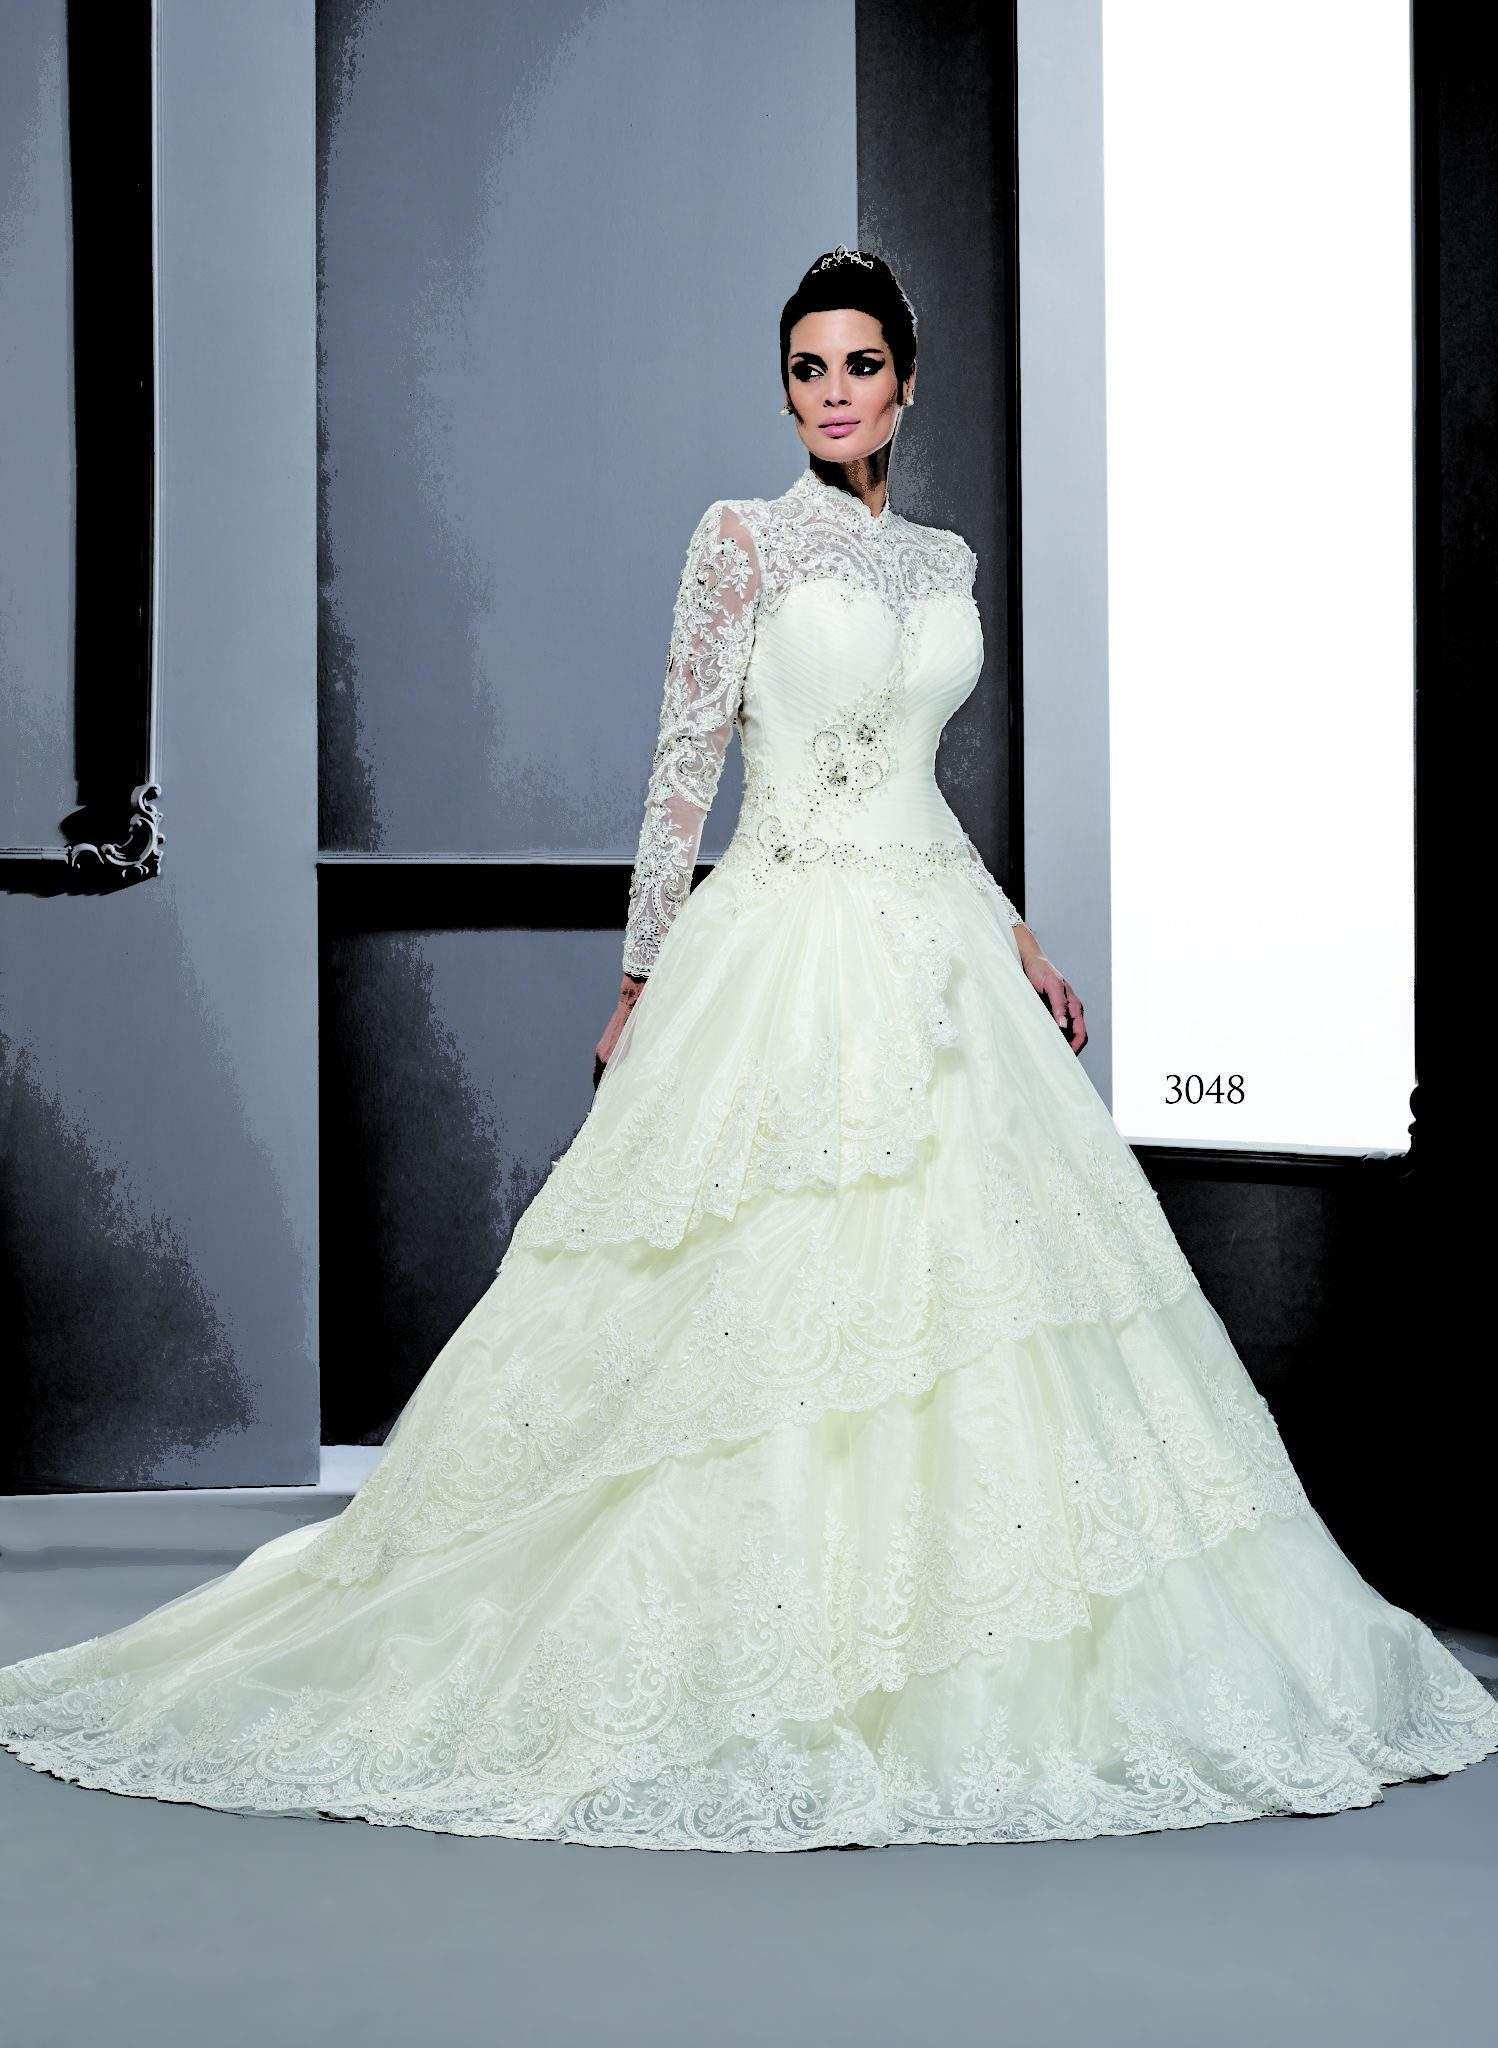 Winter Wedding Dress.Style T3048